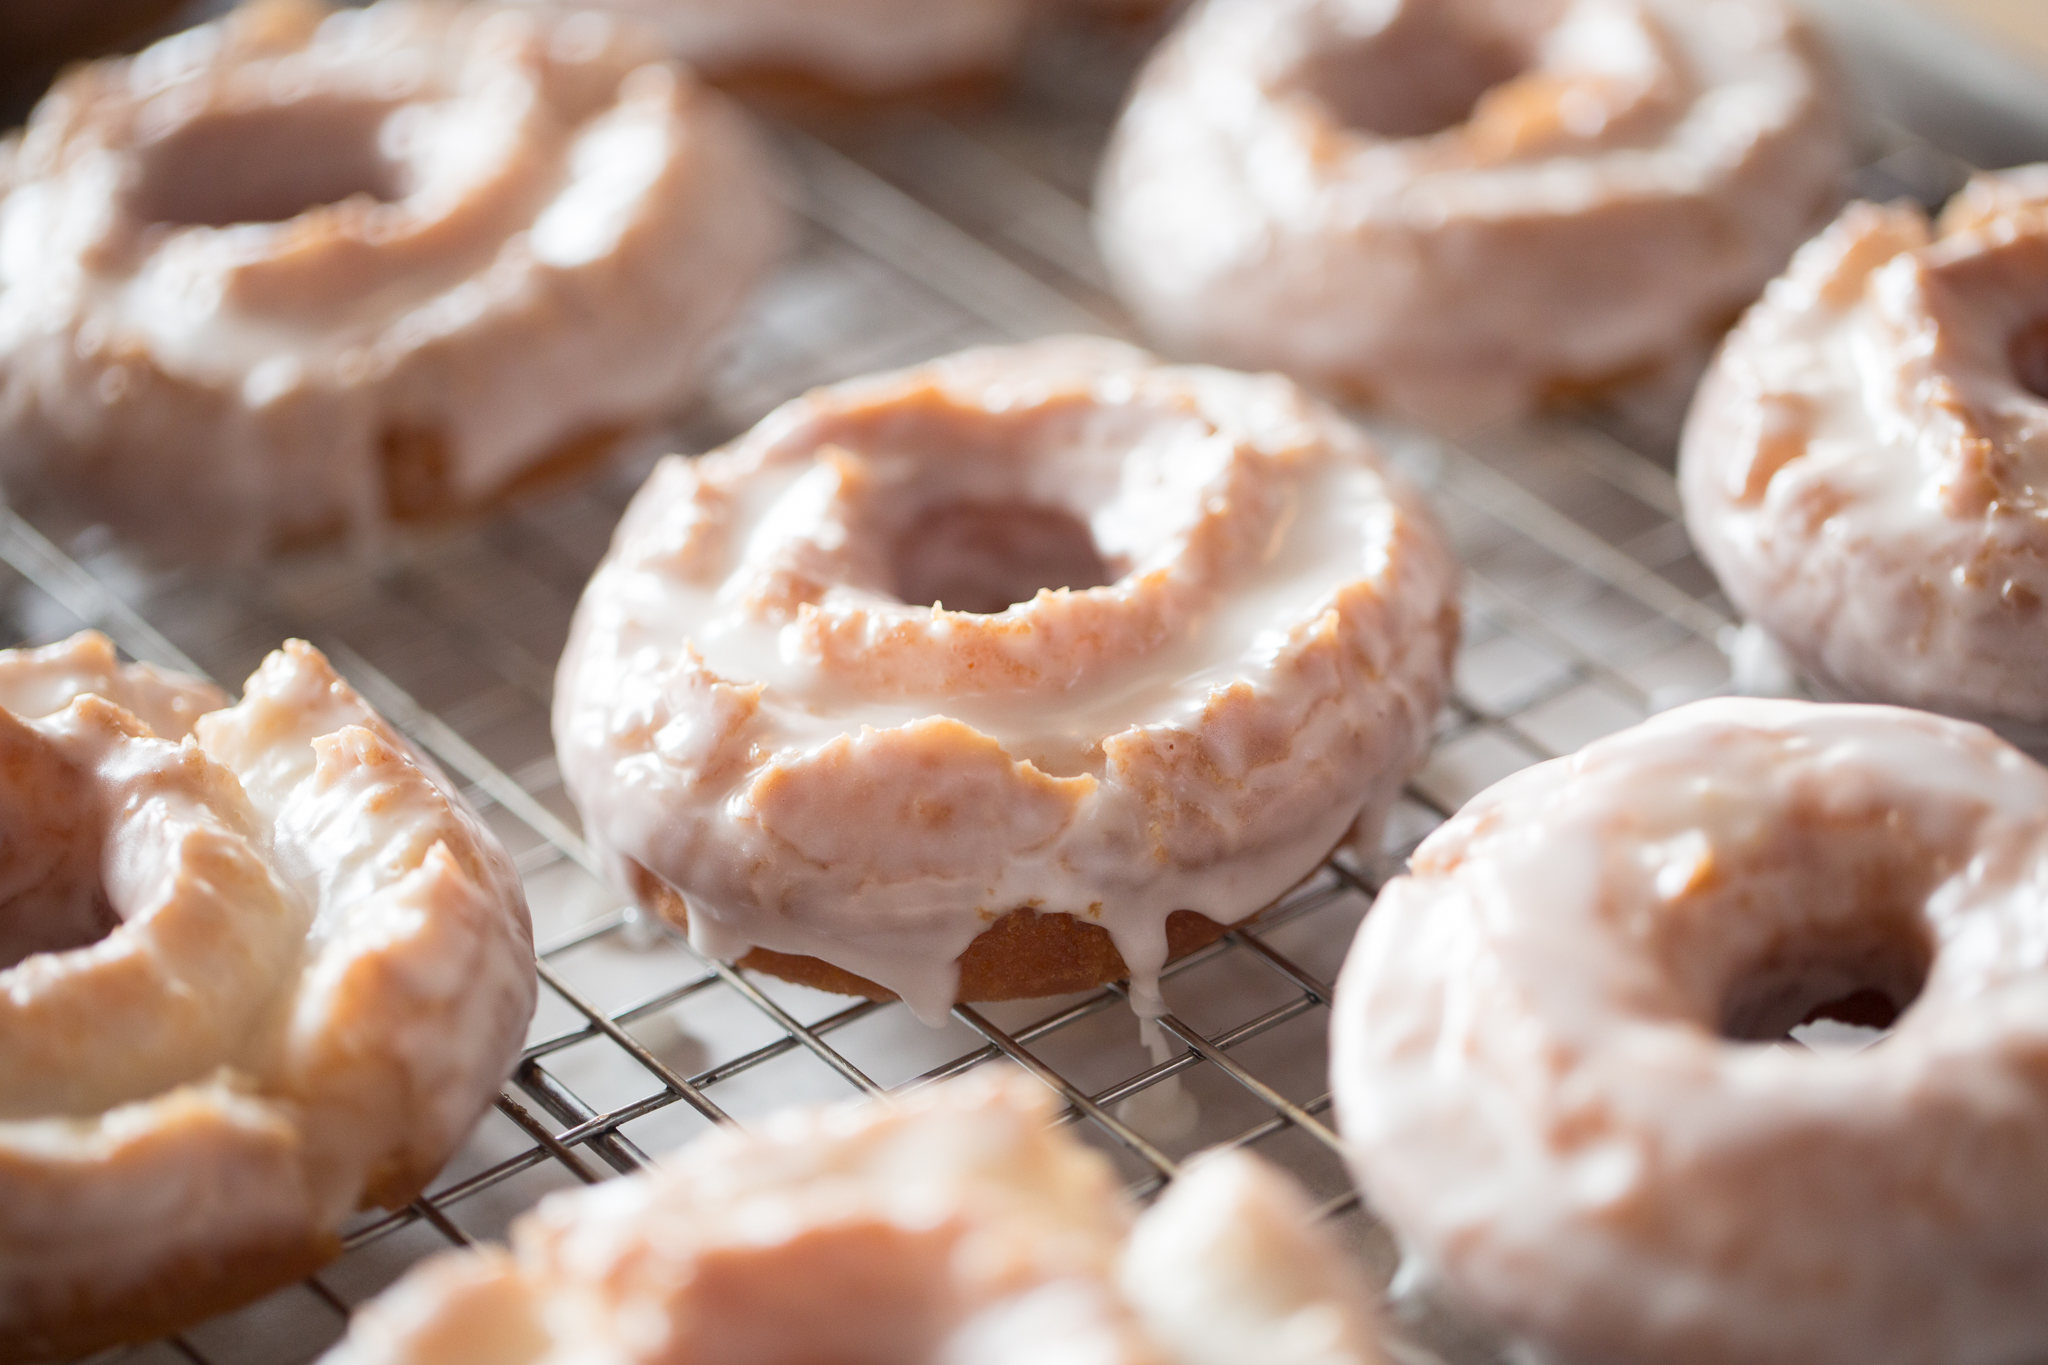 How to make icing for donuts with powdered sugar